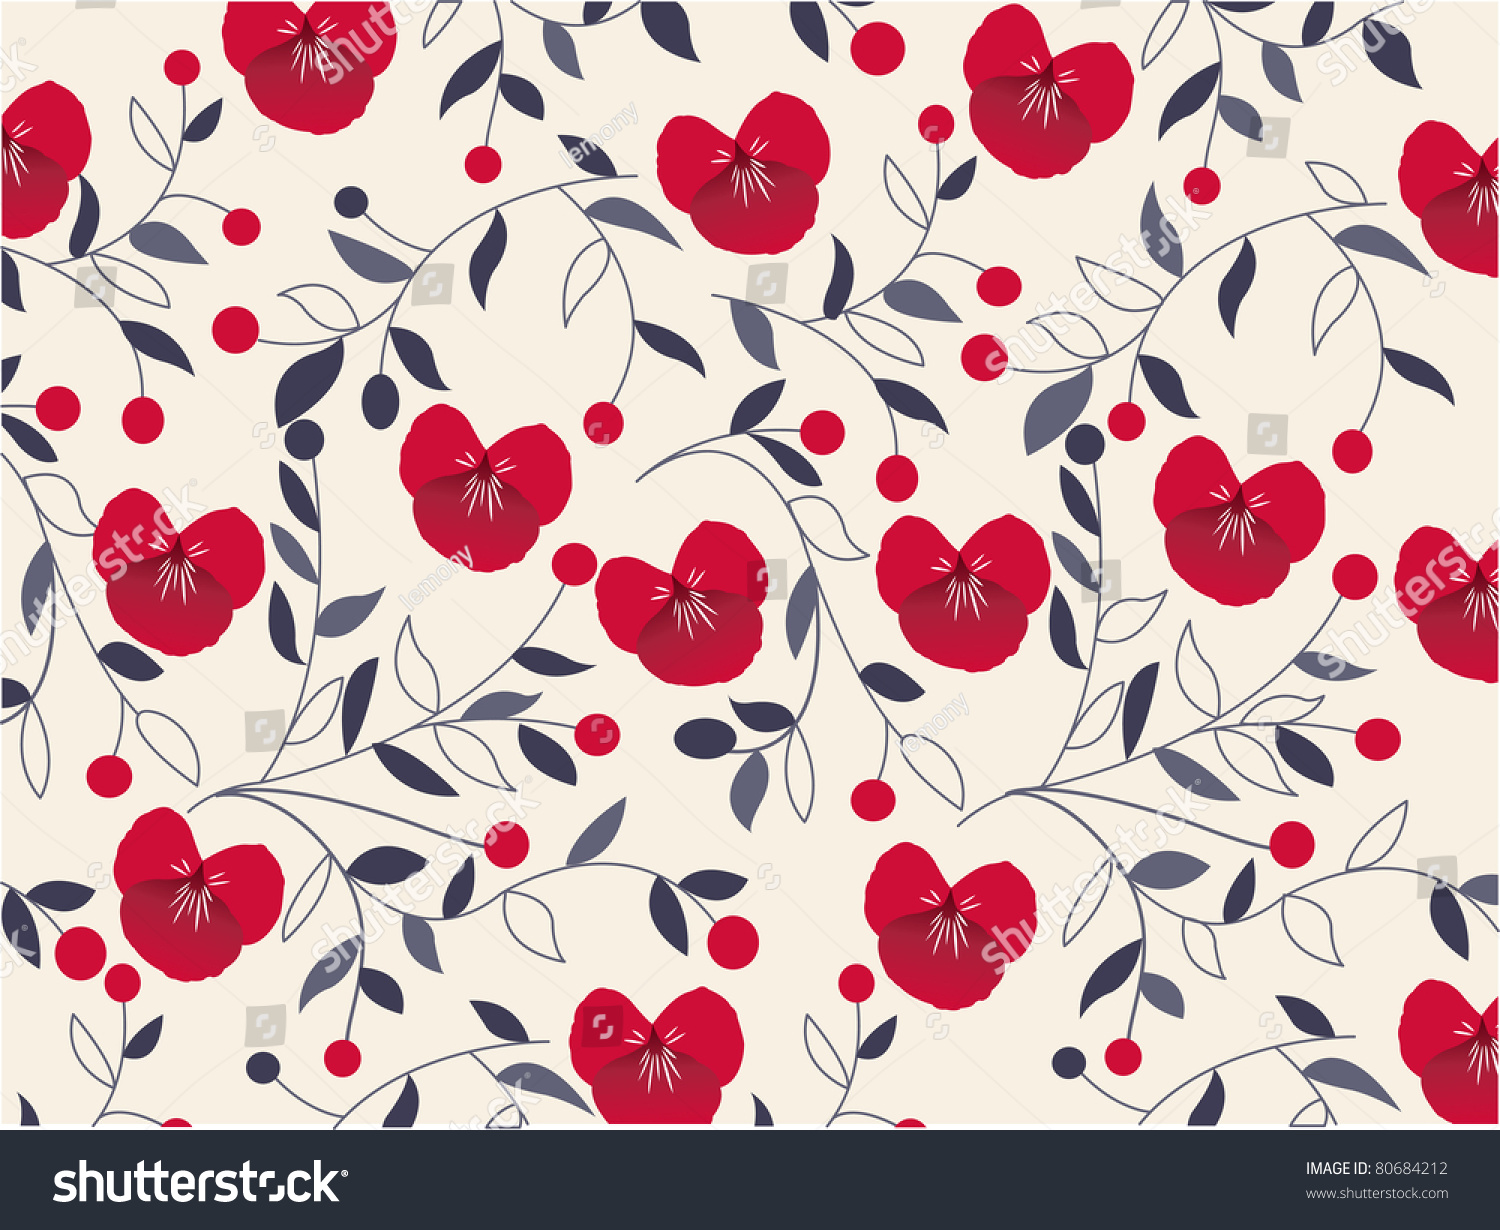 Seamless Floral Pattern Fabric Texture Stock Vector 80684212 ... for seamless floral fabric textures  66pct